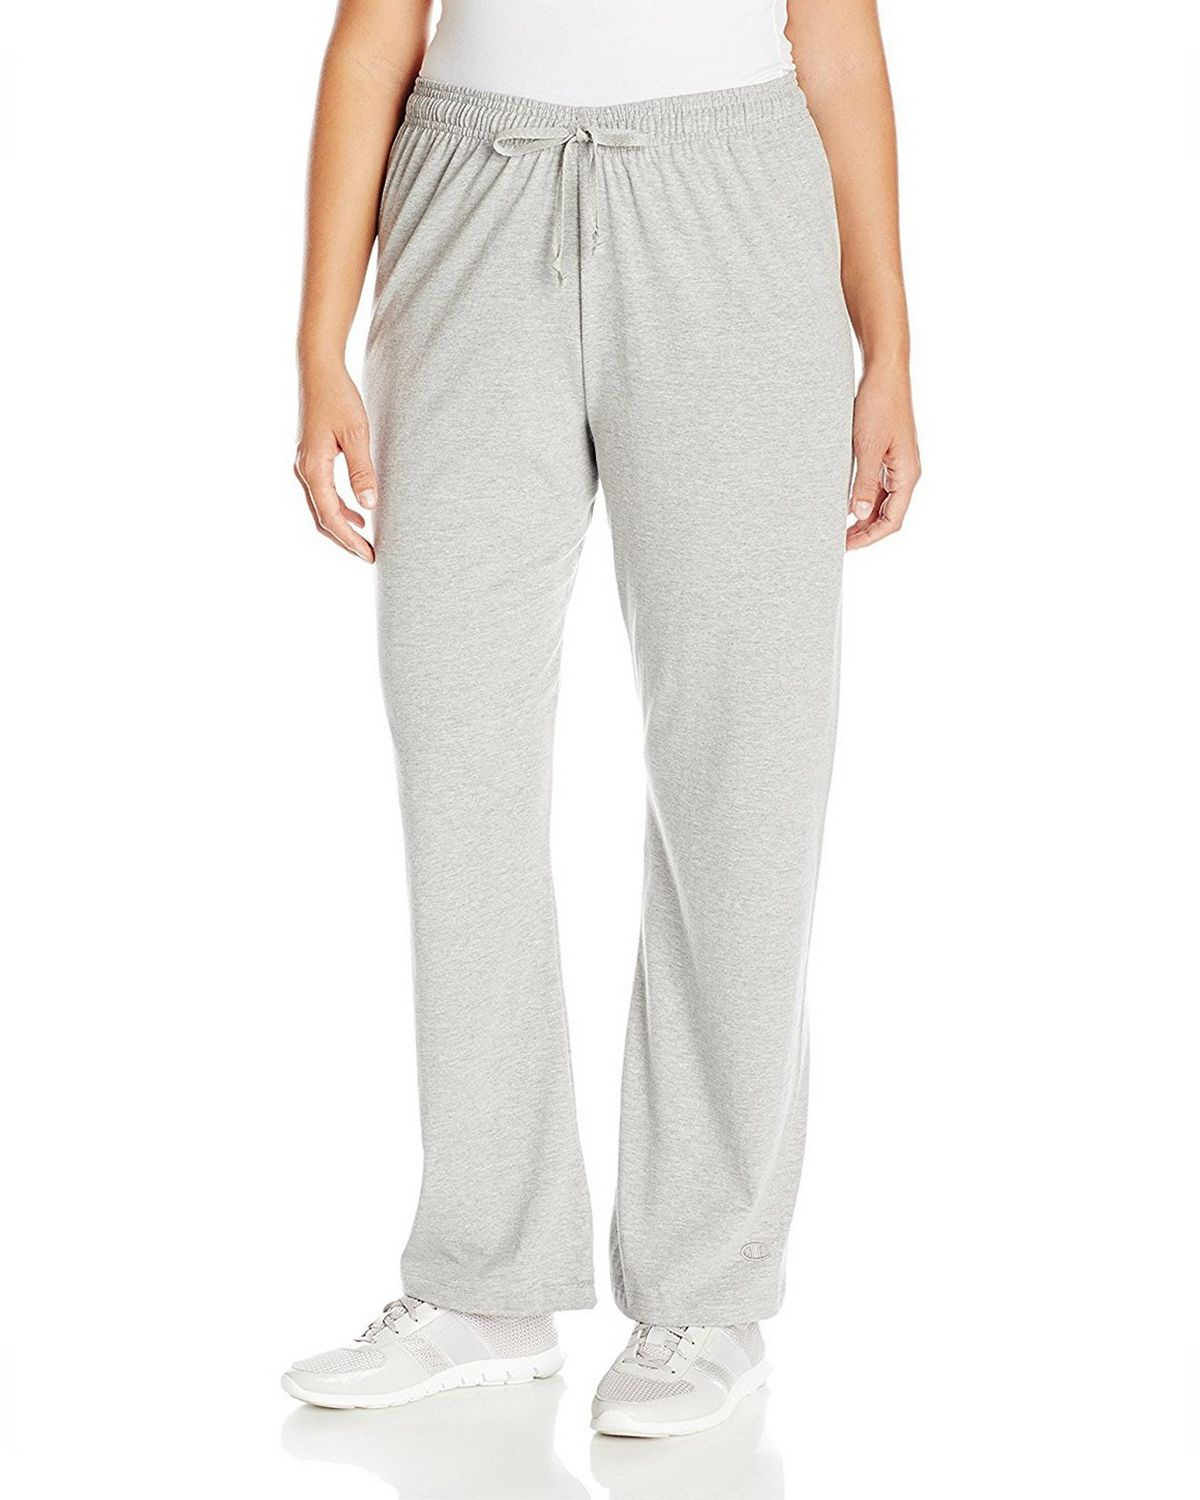 Champion QM1243 Plus Jersey Pants - Oxford Grey - 2X QM1243